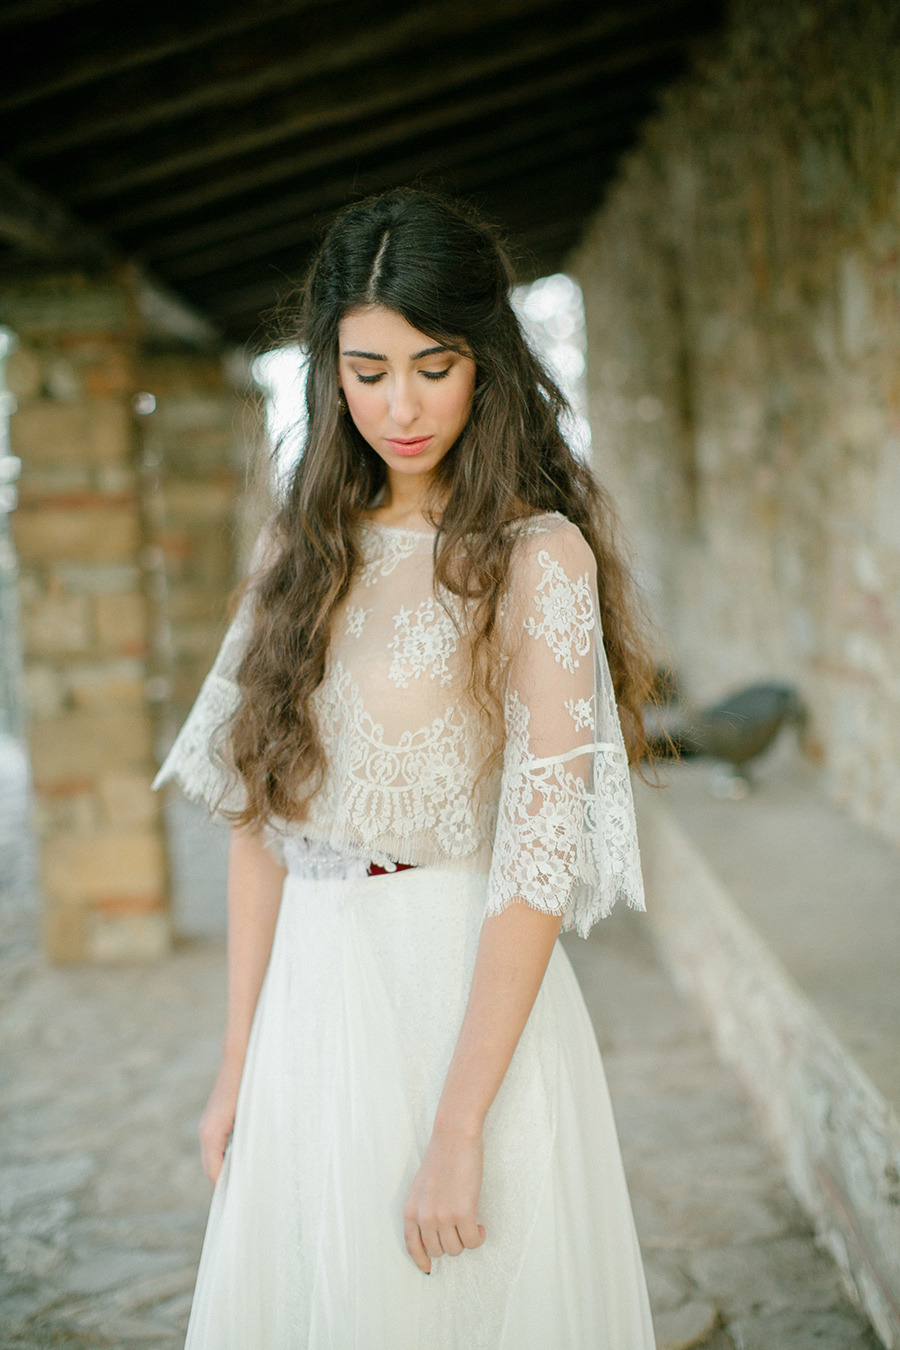 lace wedding dress - Boho Chic Wedding Inspiration Shoot from Anna Roussos Photography - annaroussos.com | Read more : https://www.fabmood.com/boho-chic-wedding-inspiration-shoot-anna-roussos-photography